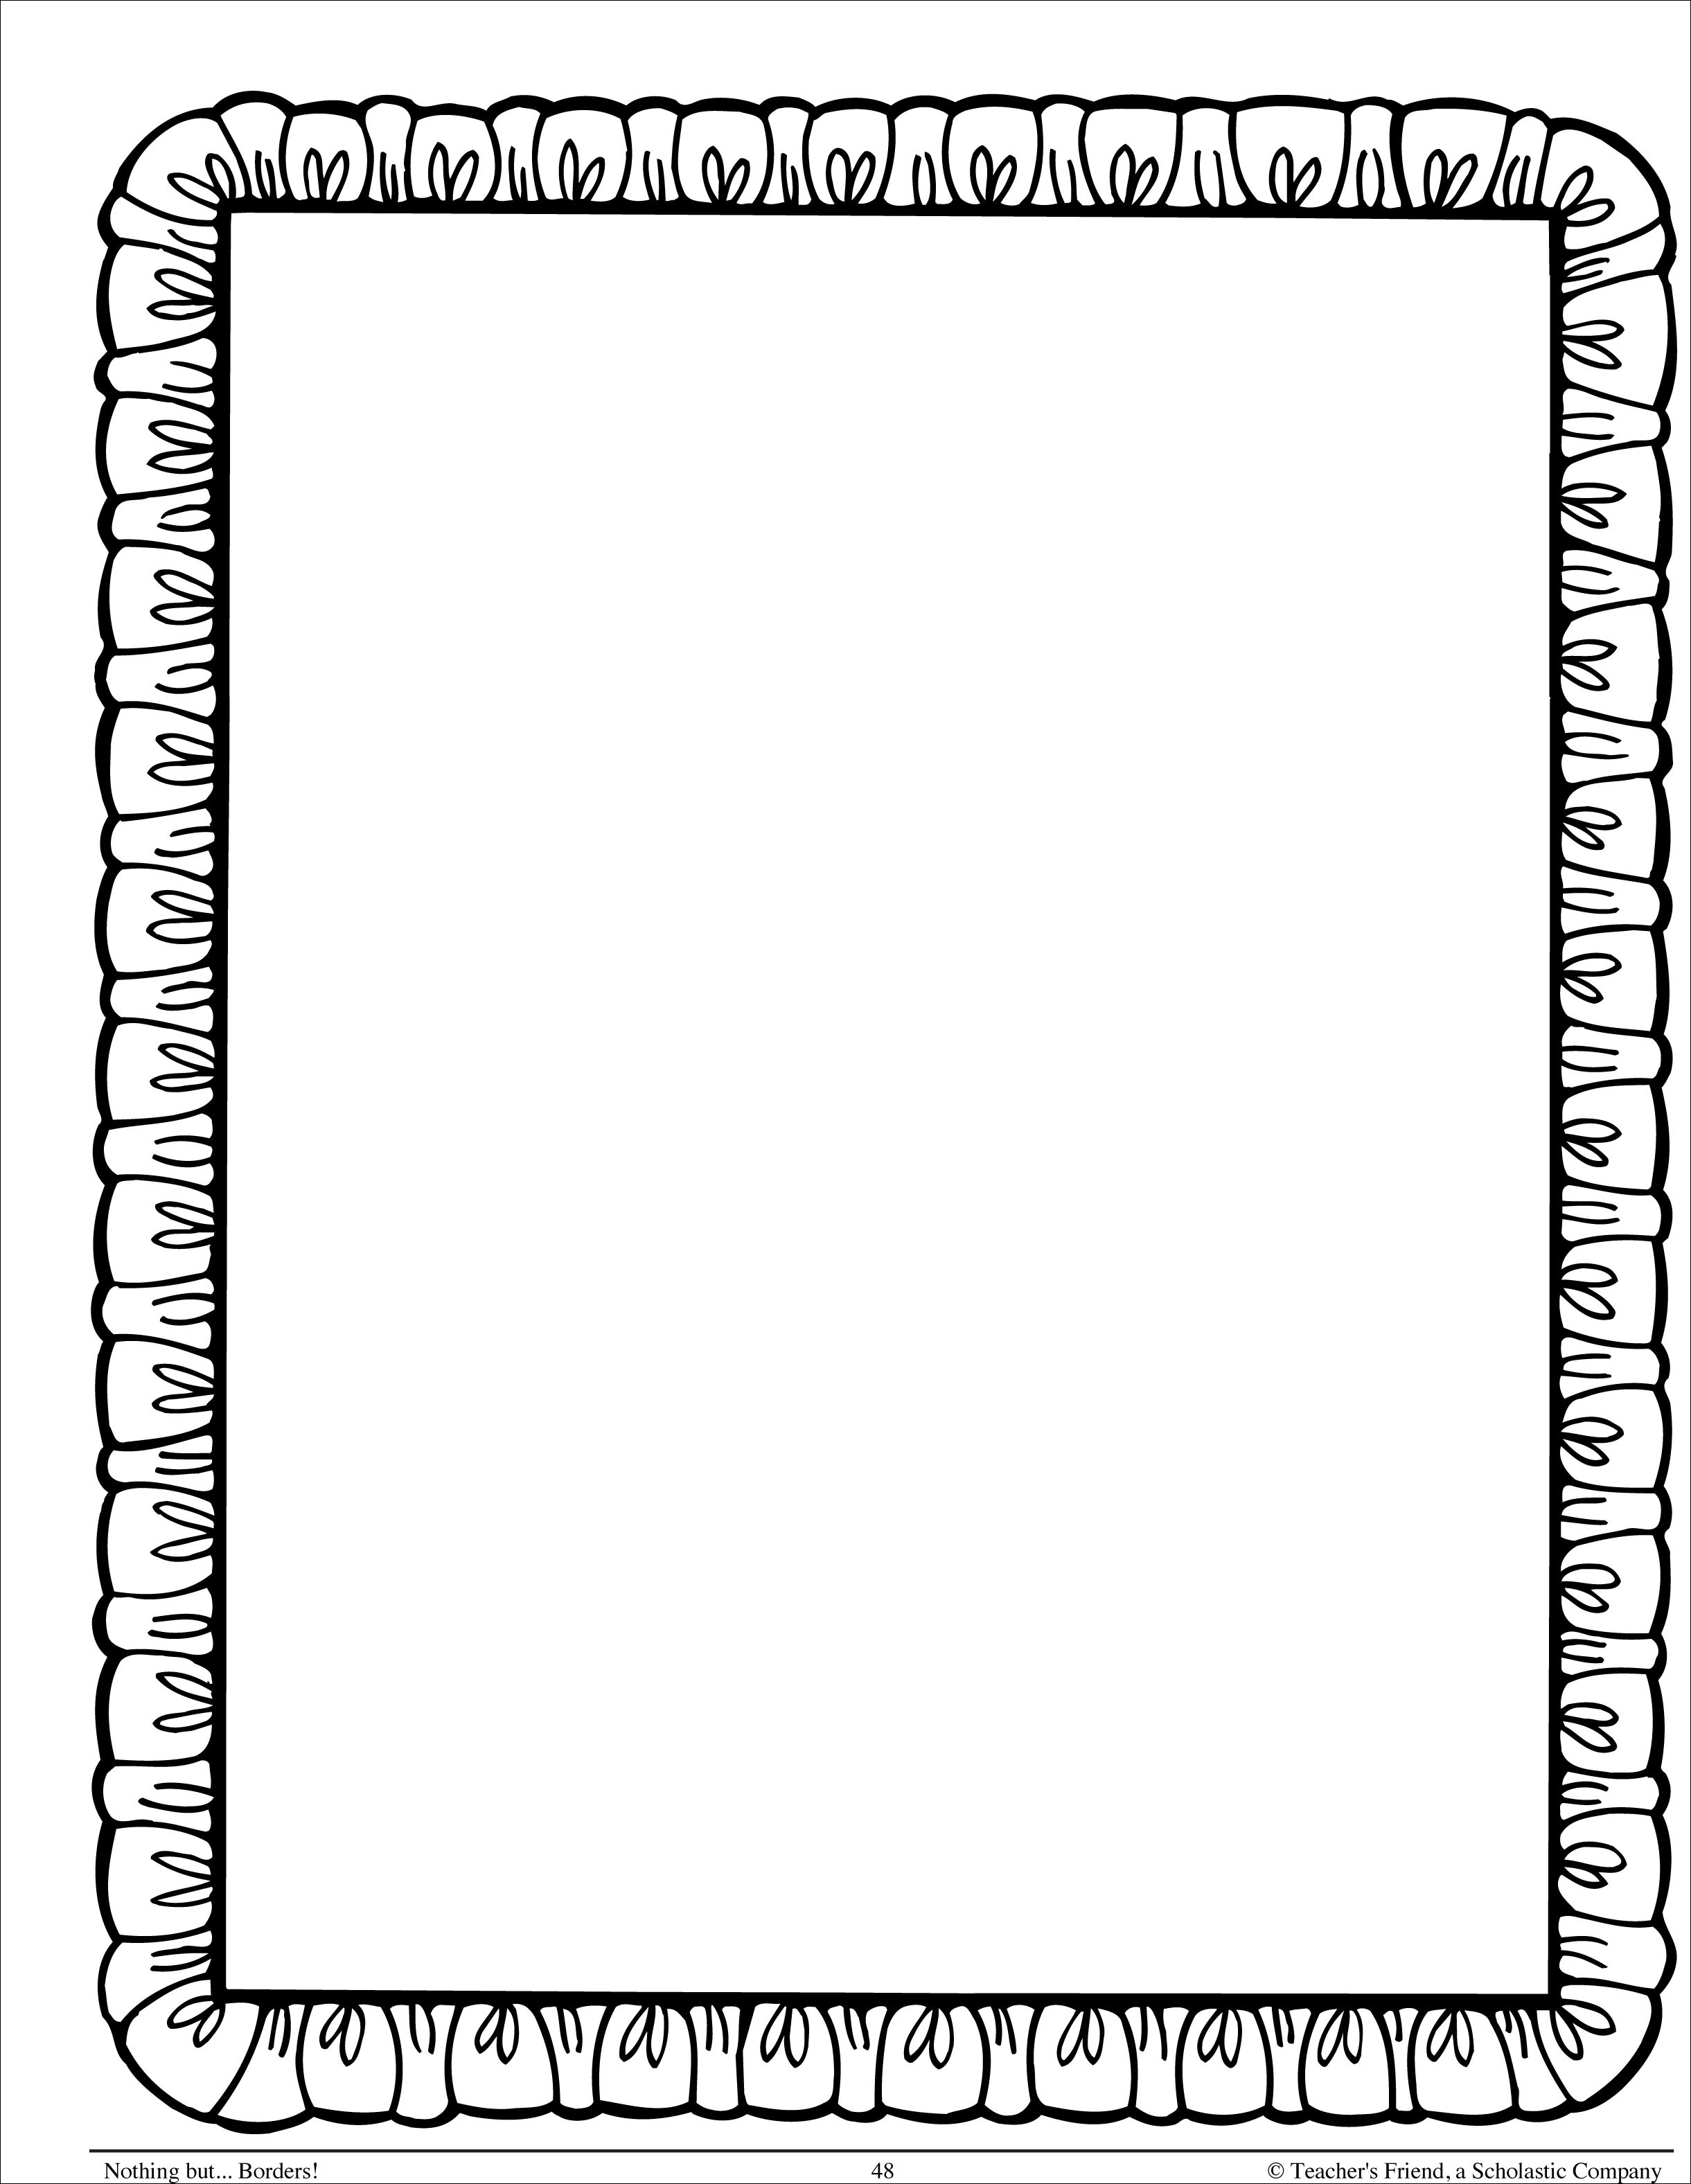 Simple Border Designs For School Projects To Draw - Cliparts.co